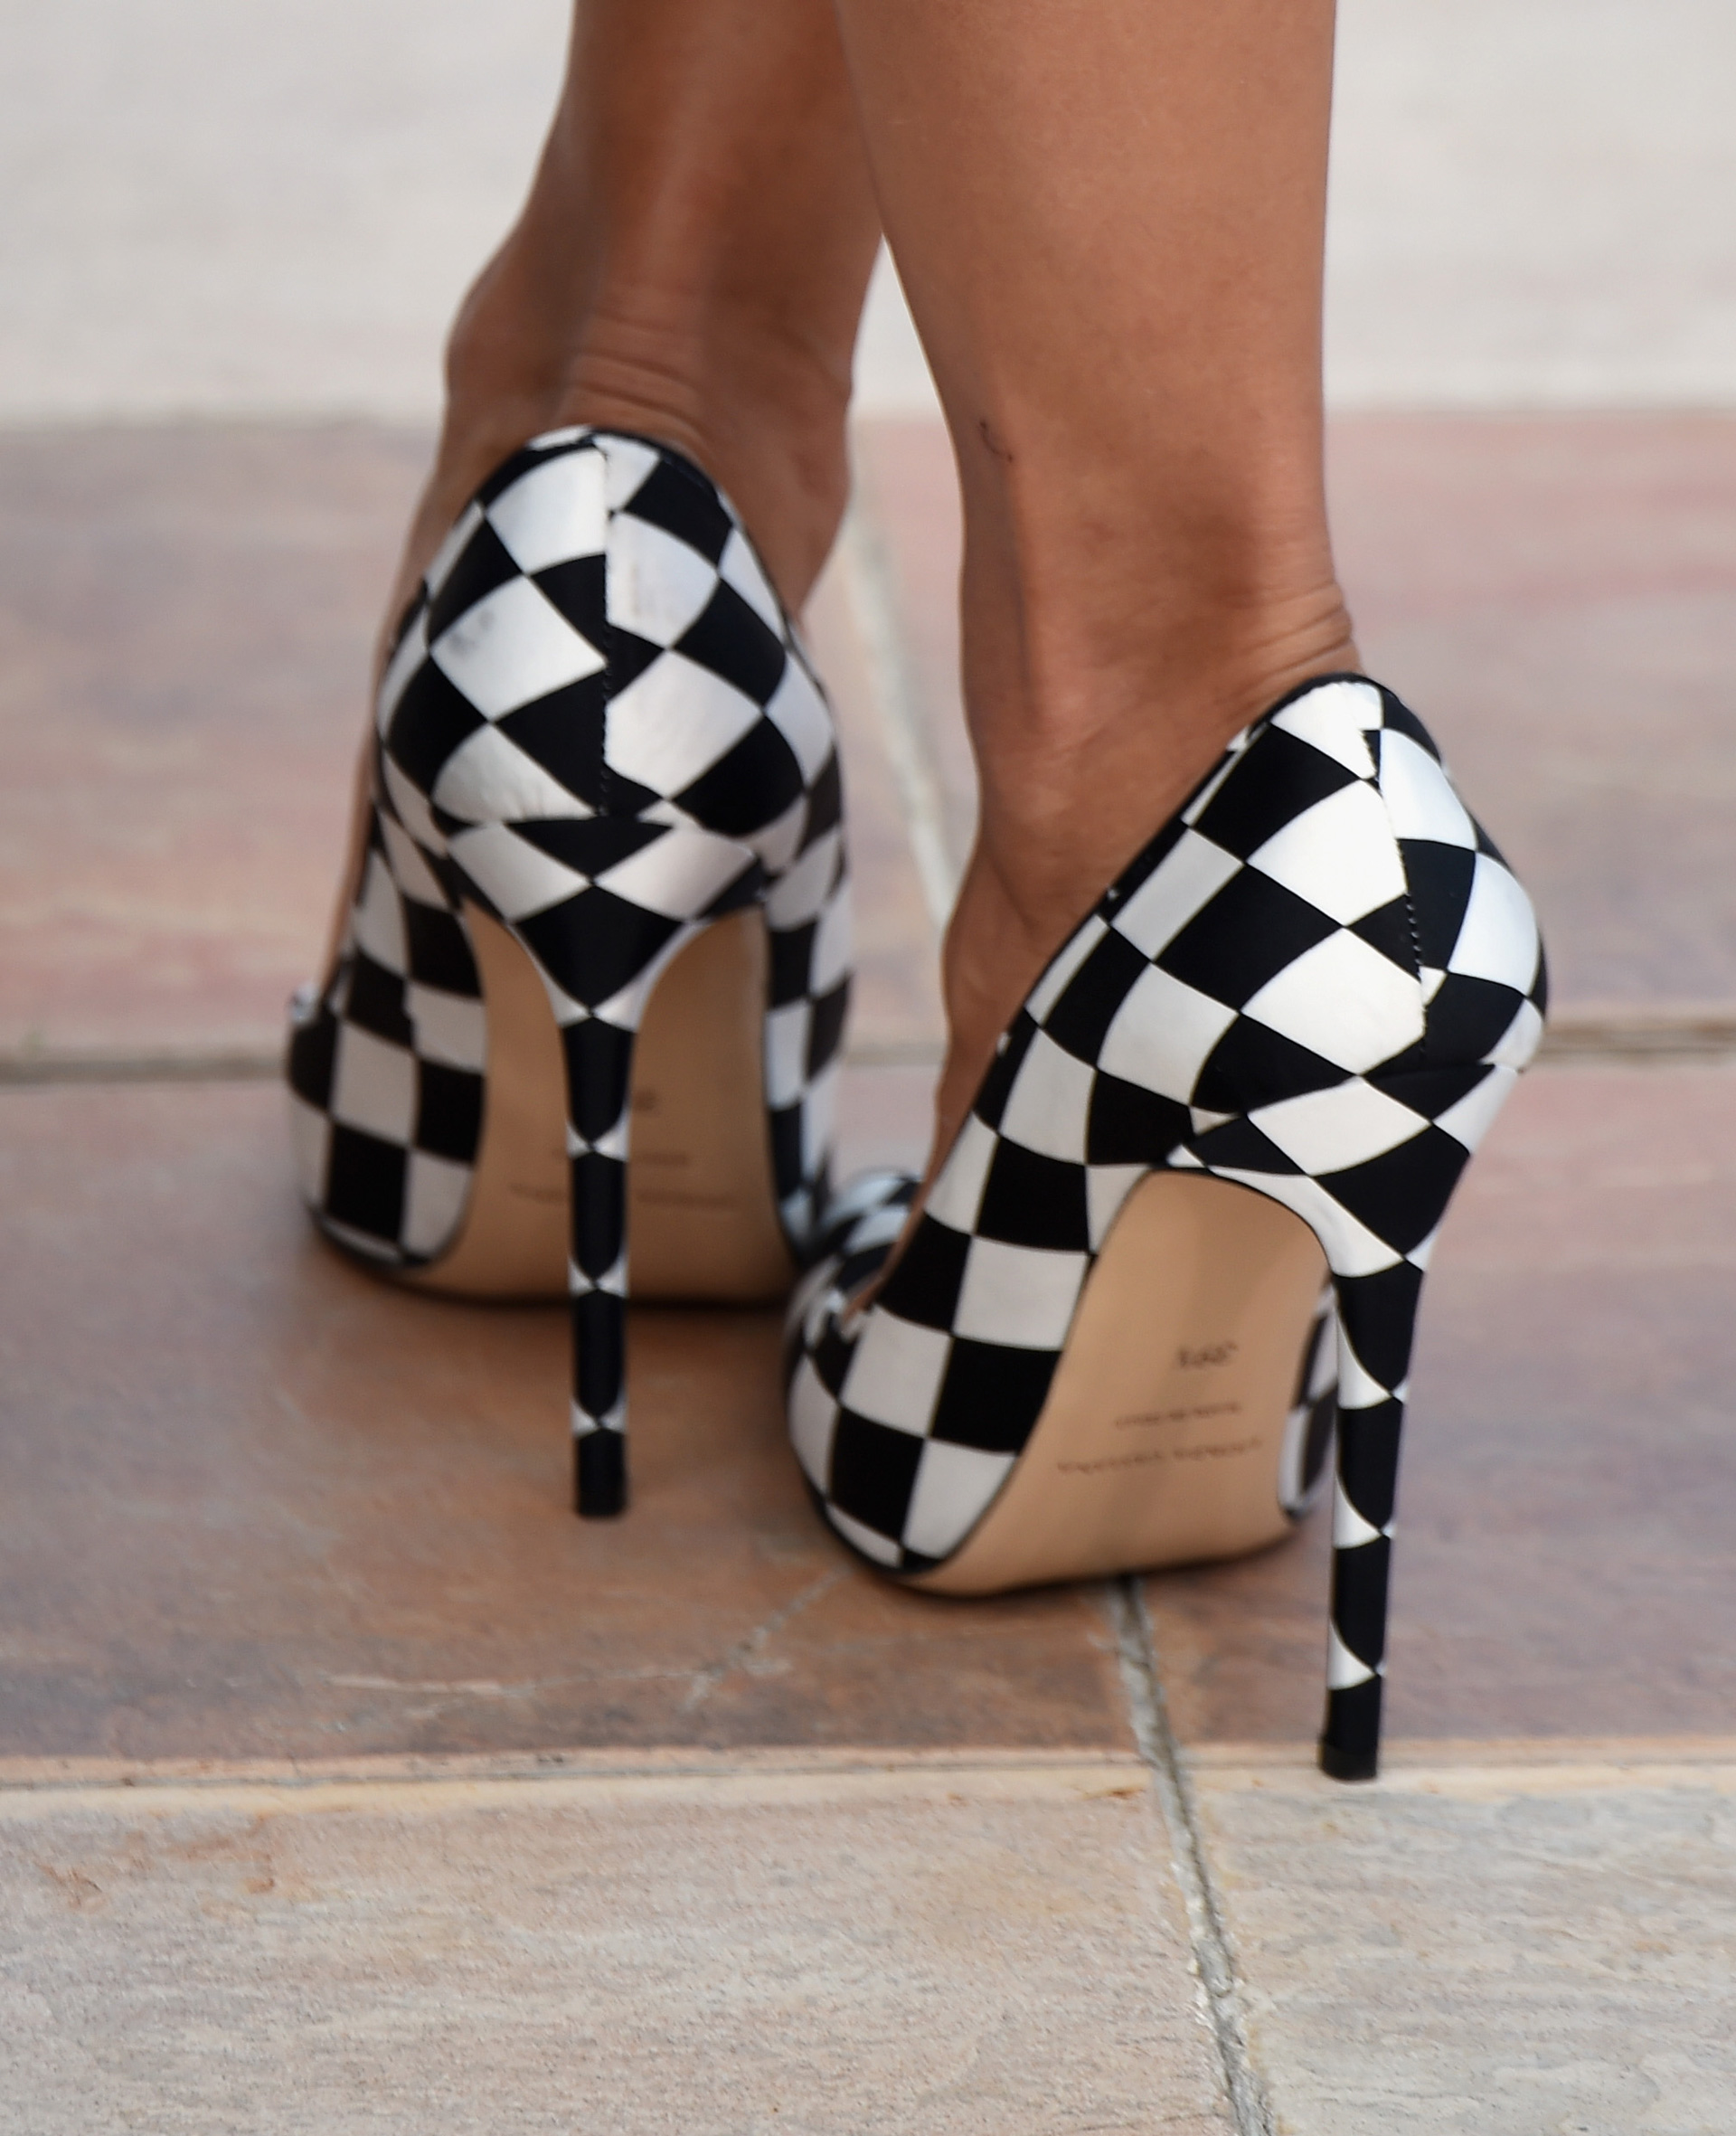 Rosario Dawson's checked shoes at the 2014 Cannes Film Festival